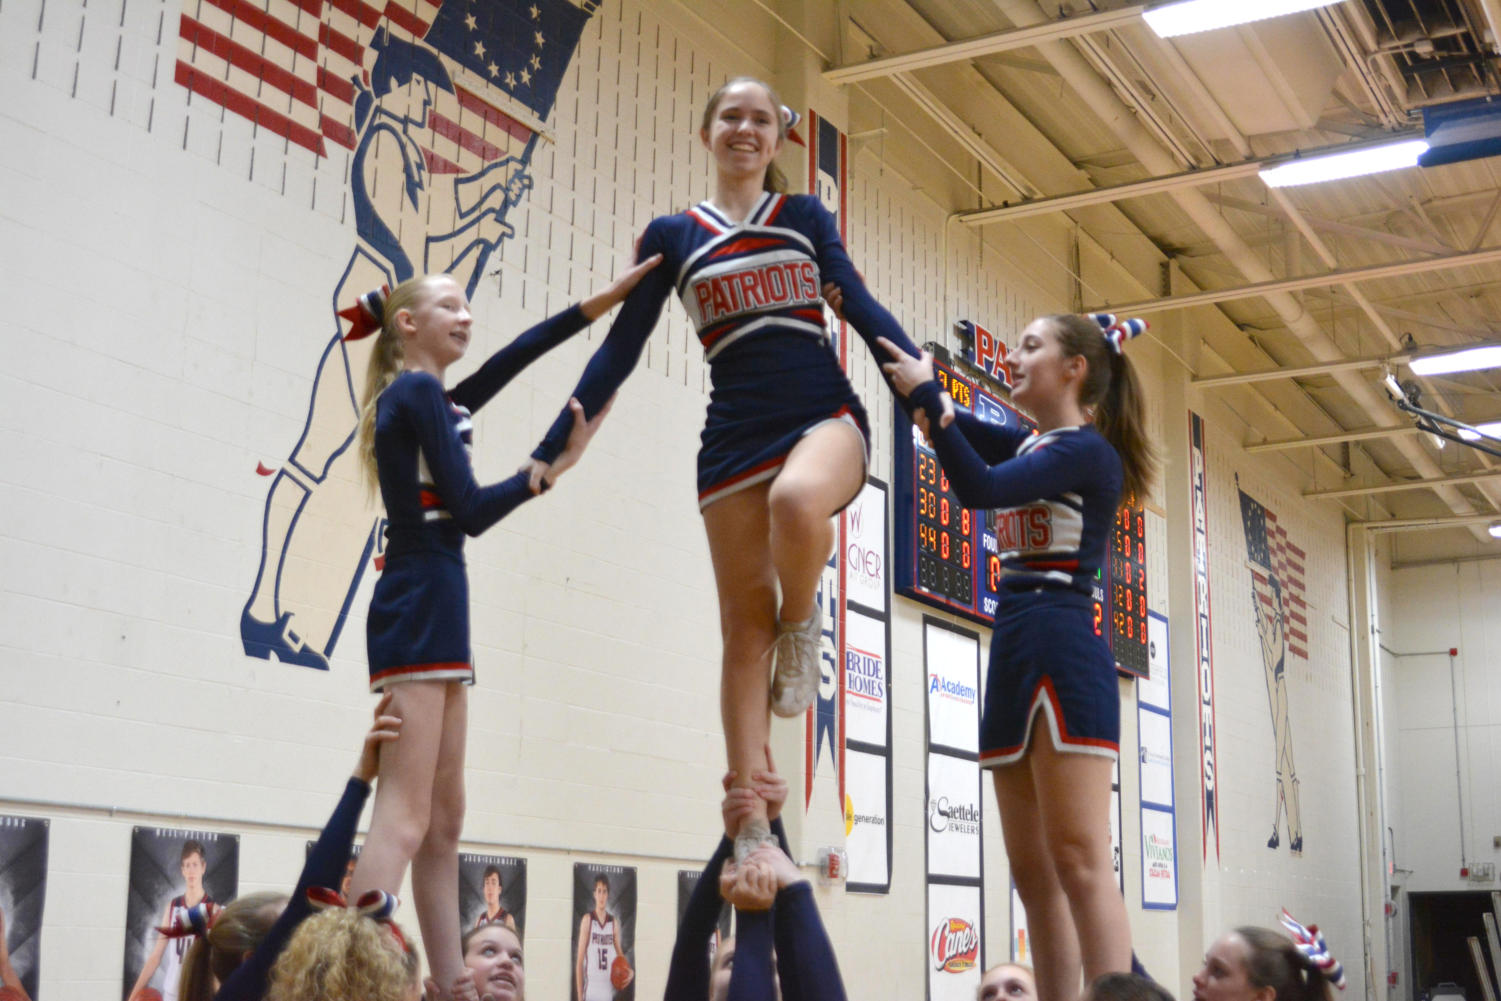 Sophomore Lauren Stark executes a Lib while being supported by freshman Kaylin Day and junior Hailey Markowitz.